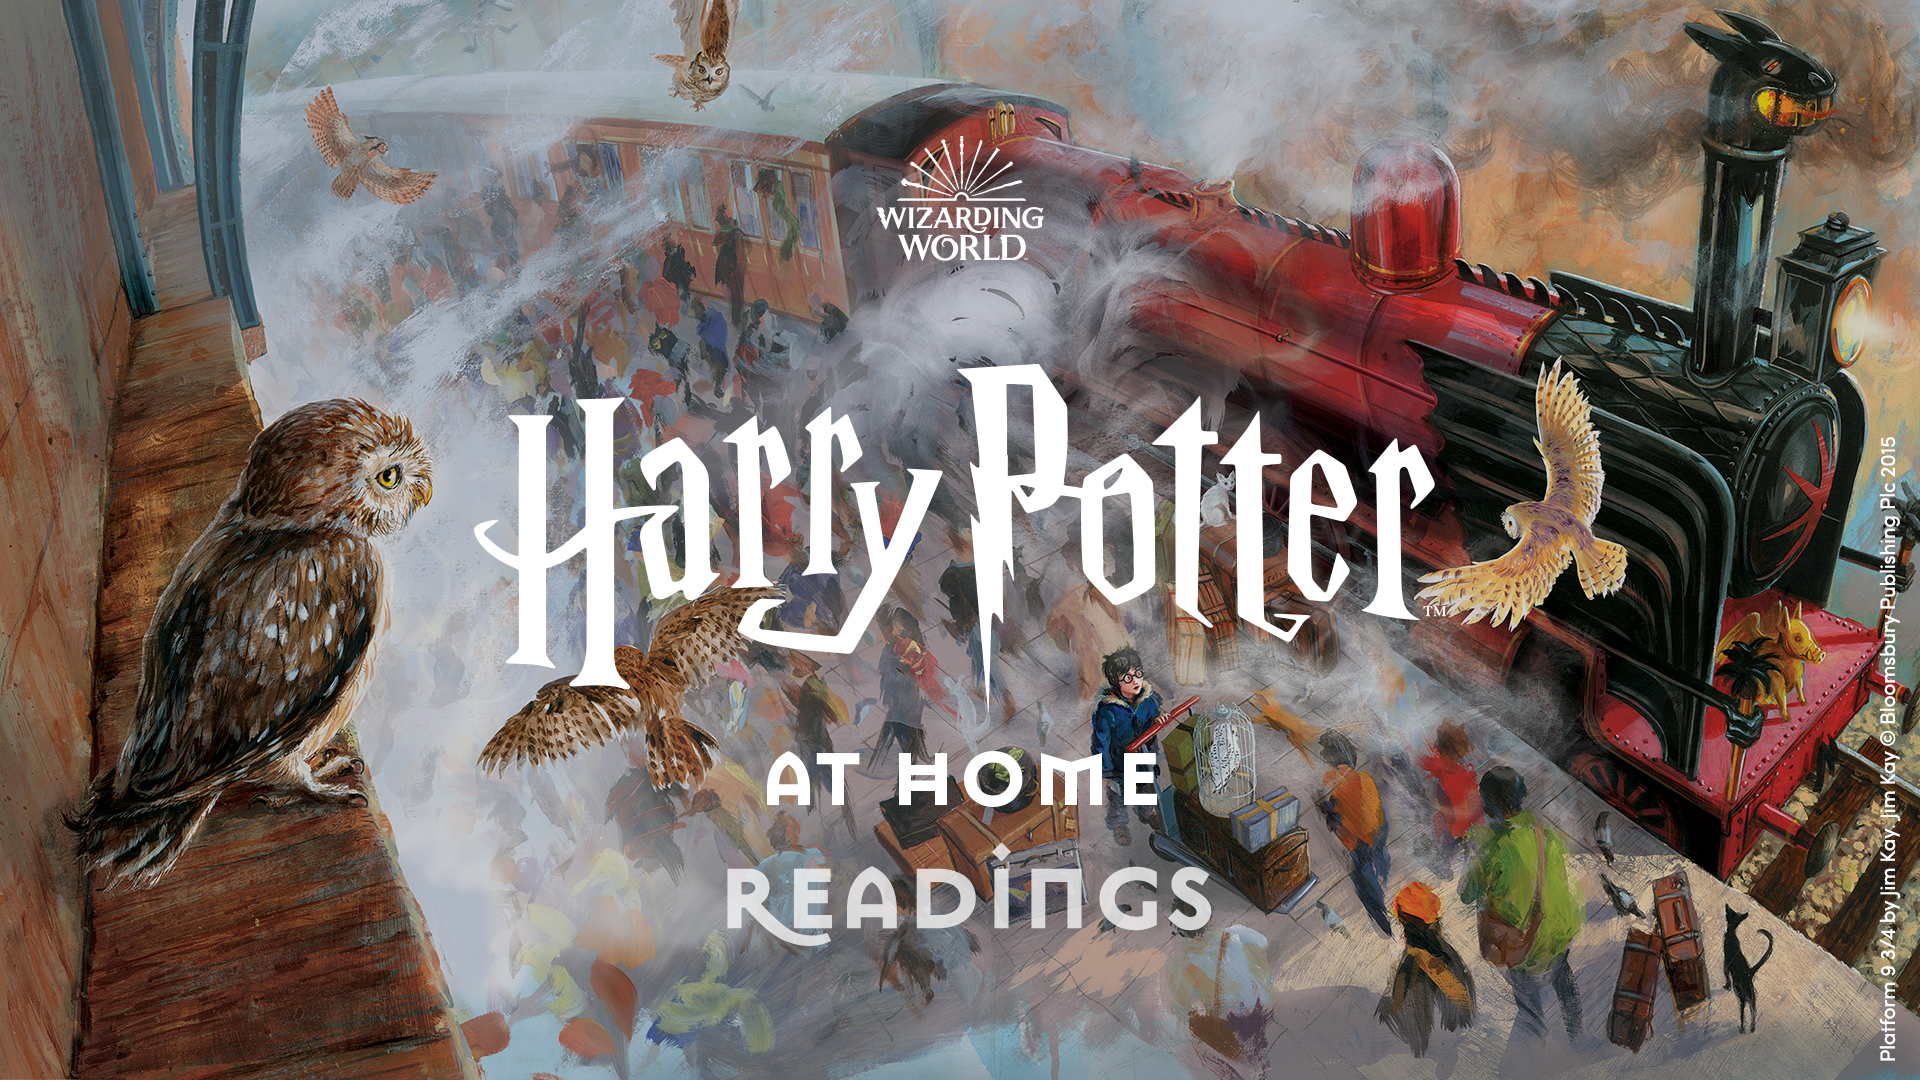 Harry Potter at home readings banner